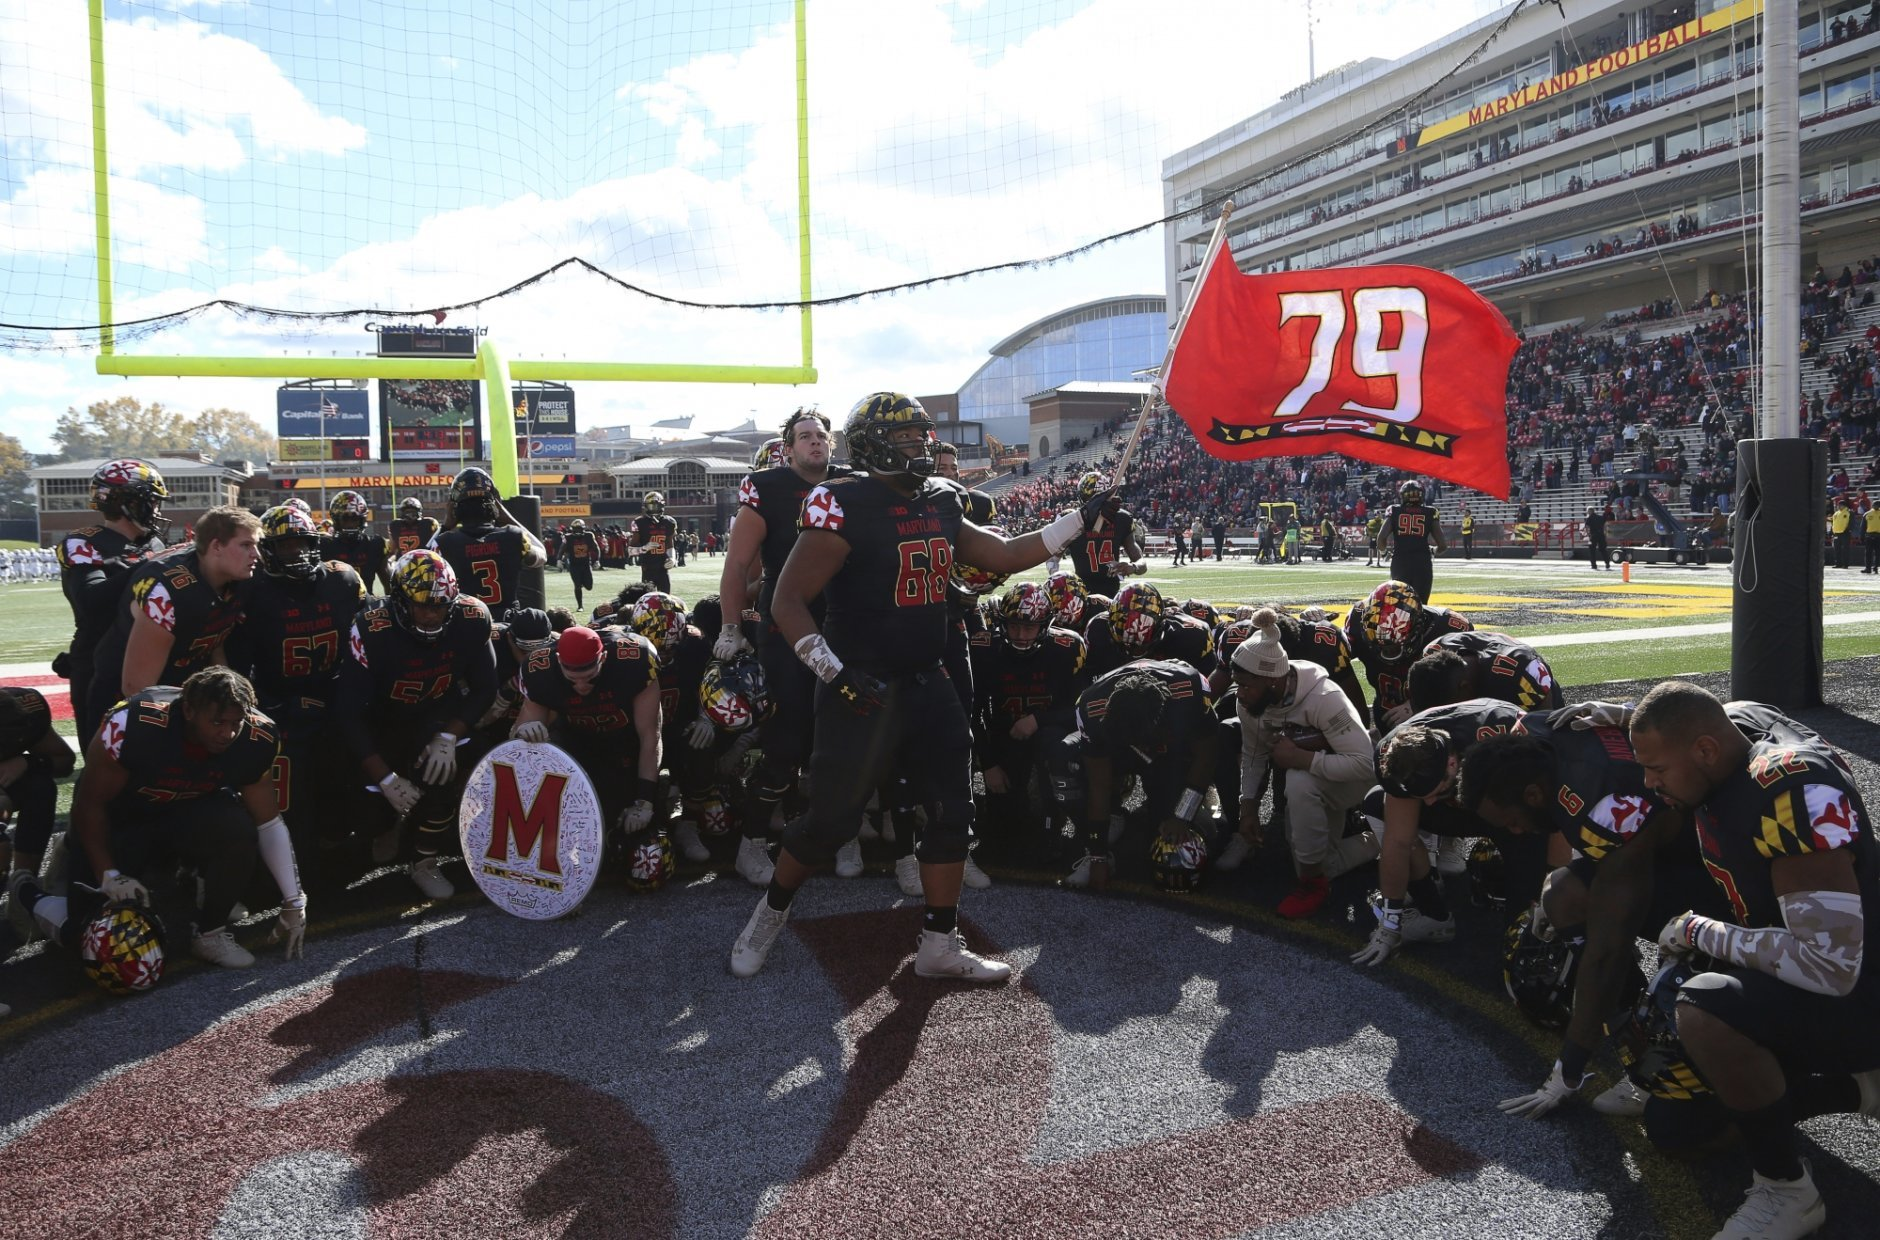 Maryland players kneel and honor their deceased teammate Jordan McNair (79) before an NCAA college football game against Michigan State, Saturday, Nov. 3, 2018, in College Park, Md. (AP Photo/Gary Cameron)